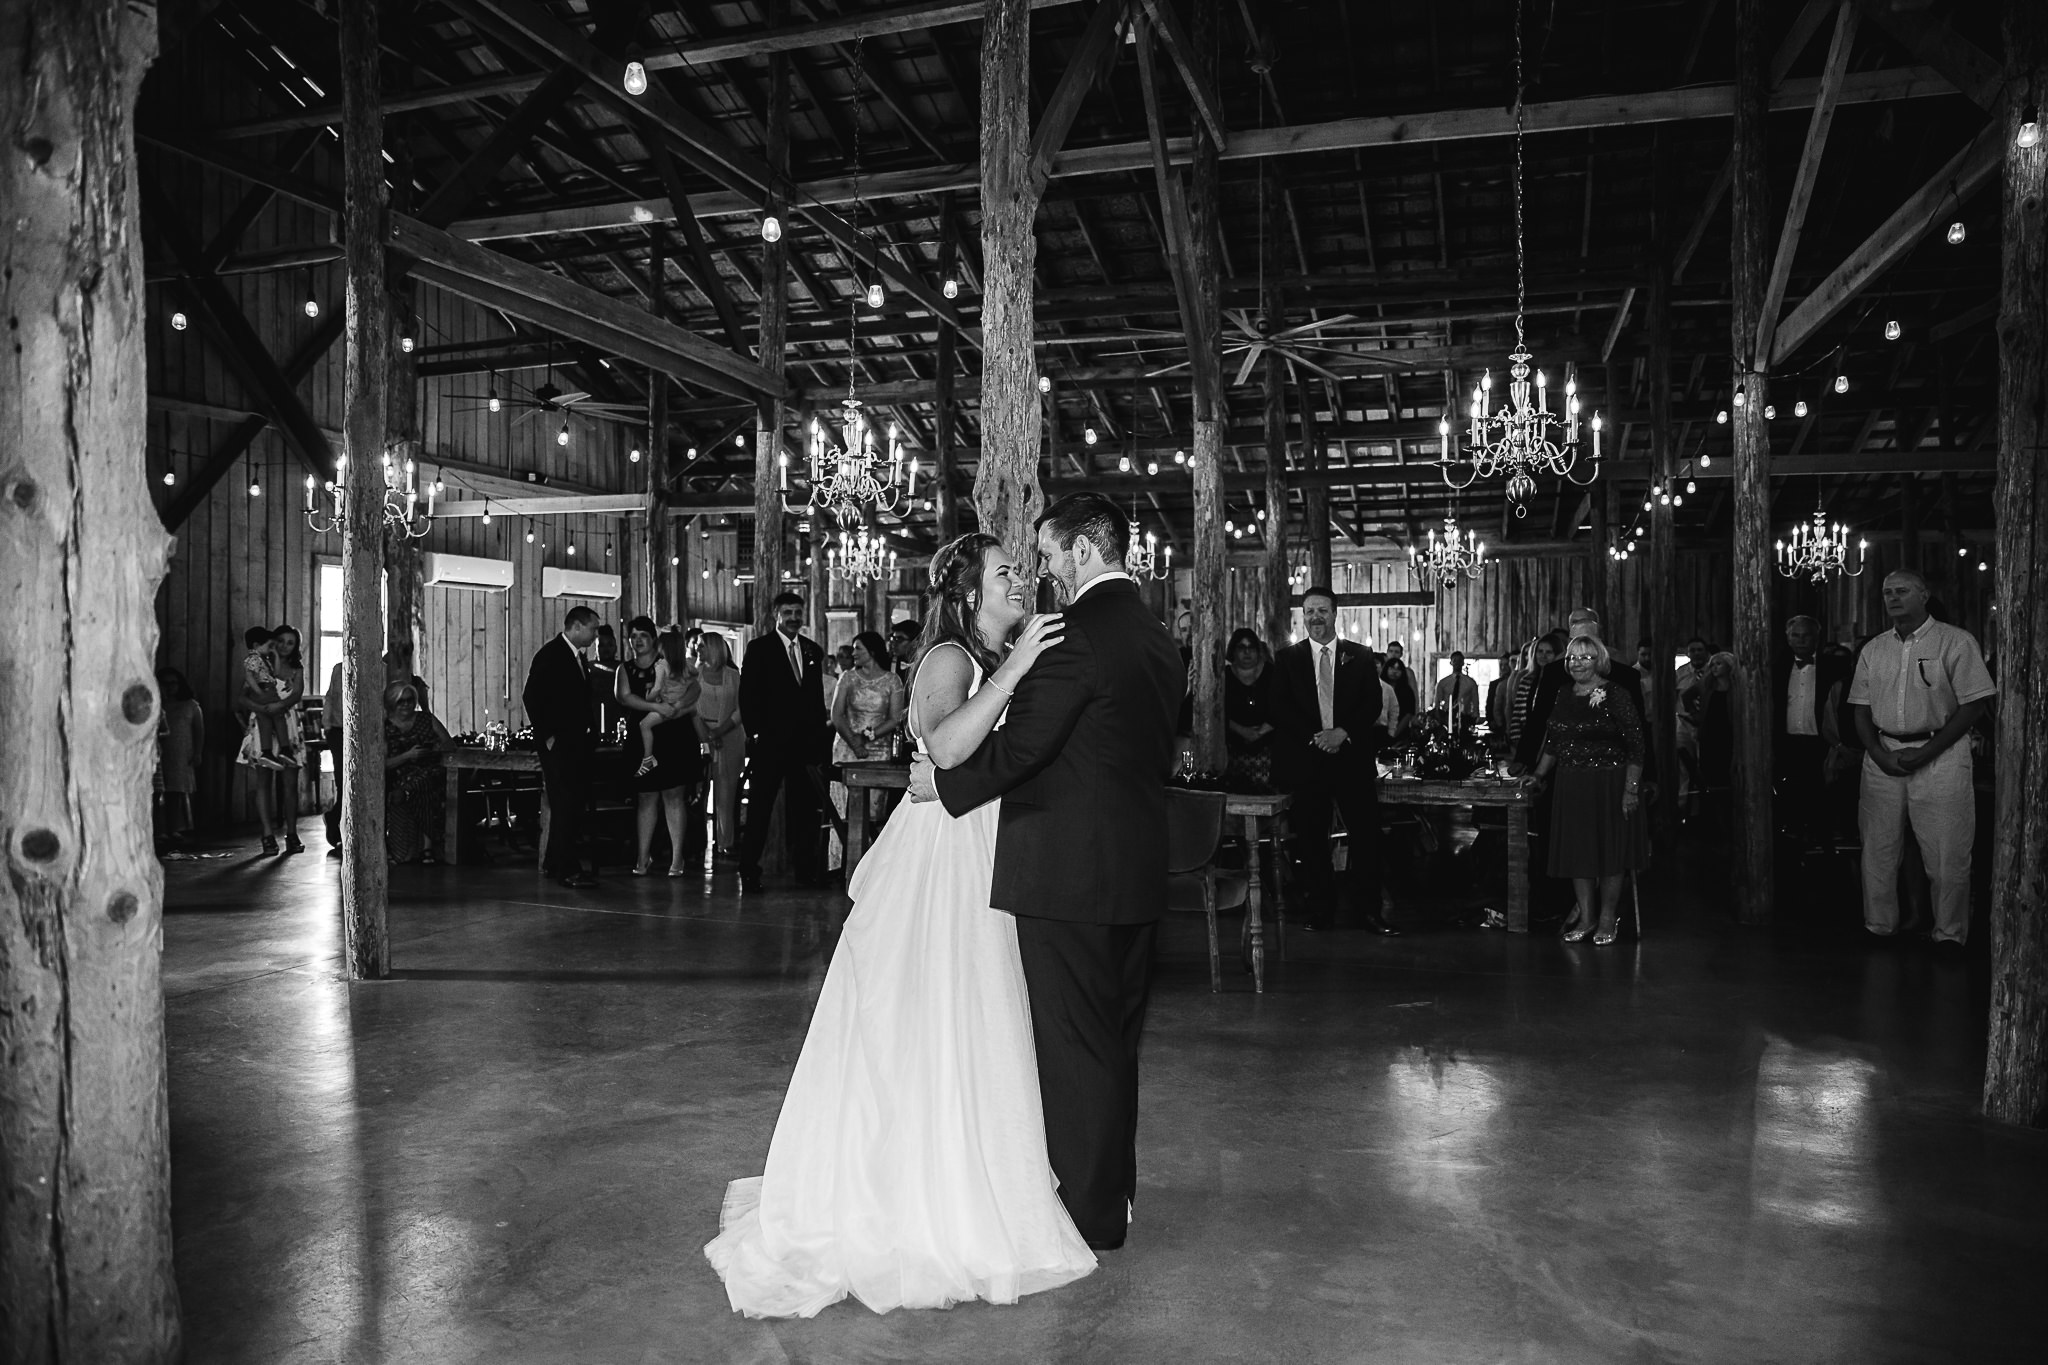 memphis-wedding-photographer-meadow-hill-farms-thewarmtharoundyou (66 of 93).jpg